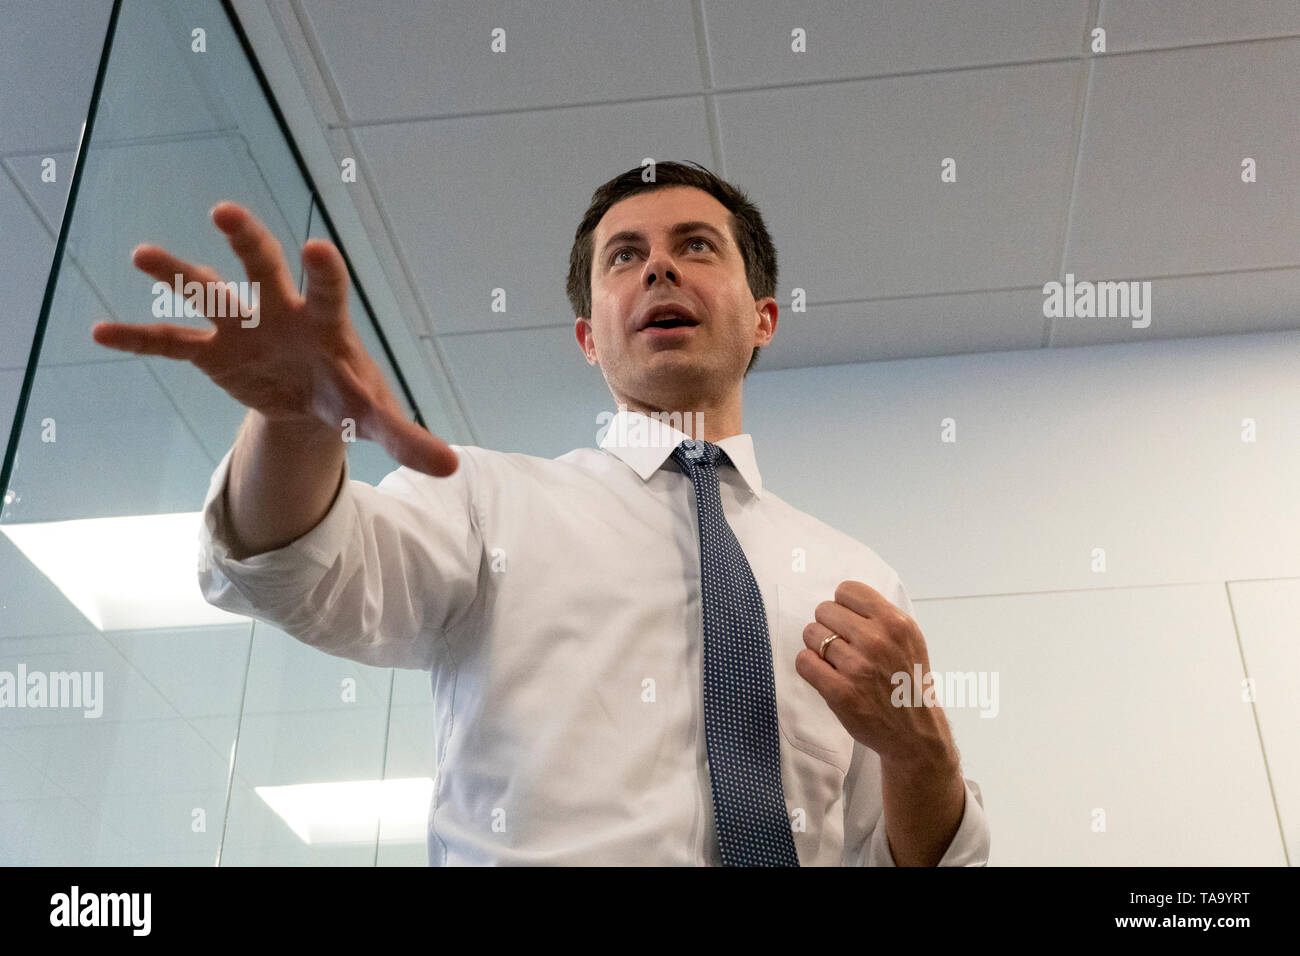 Mayor Pete Buttigieg meets with leaders of the Jewish community at a communal parlor meeting at the offices of Bluelight Strategies in Washington, DC, U.S. on May 23, 2019. Credit: Stefani Reynolds/CNP /MediaPunch Stock Photo